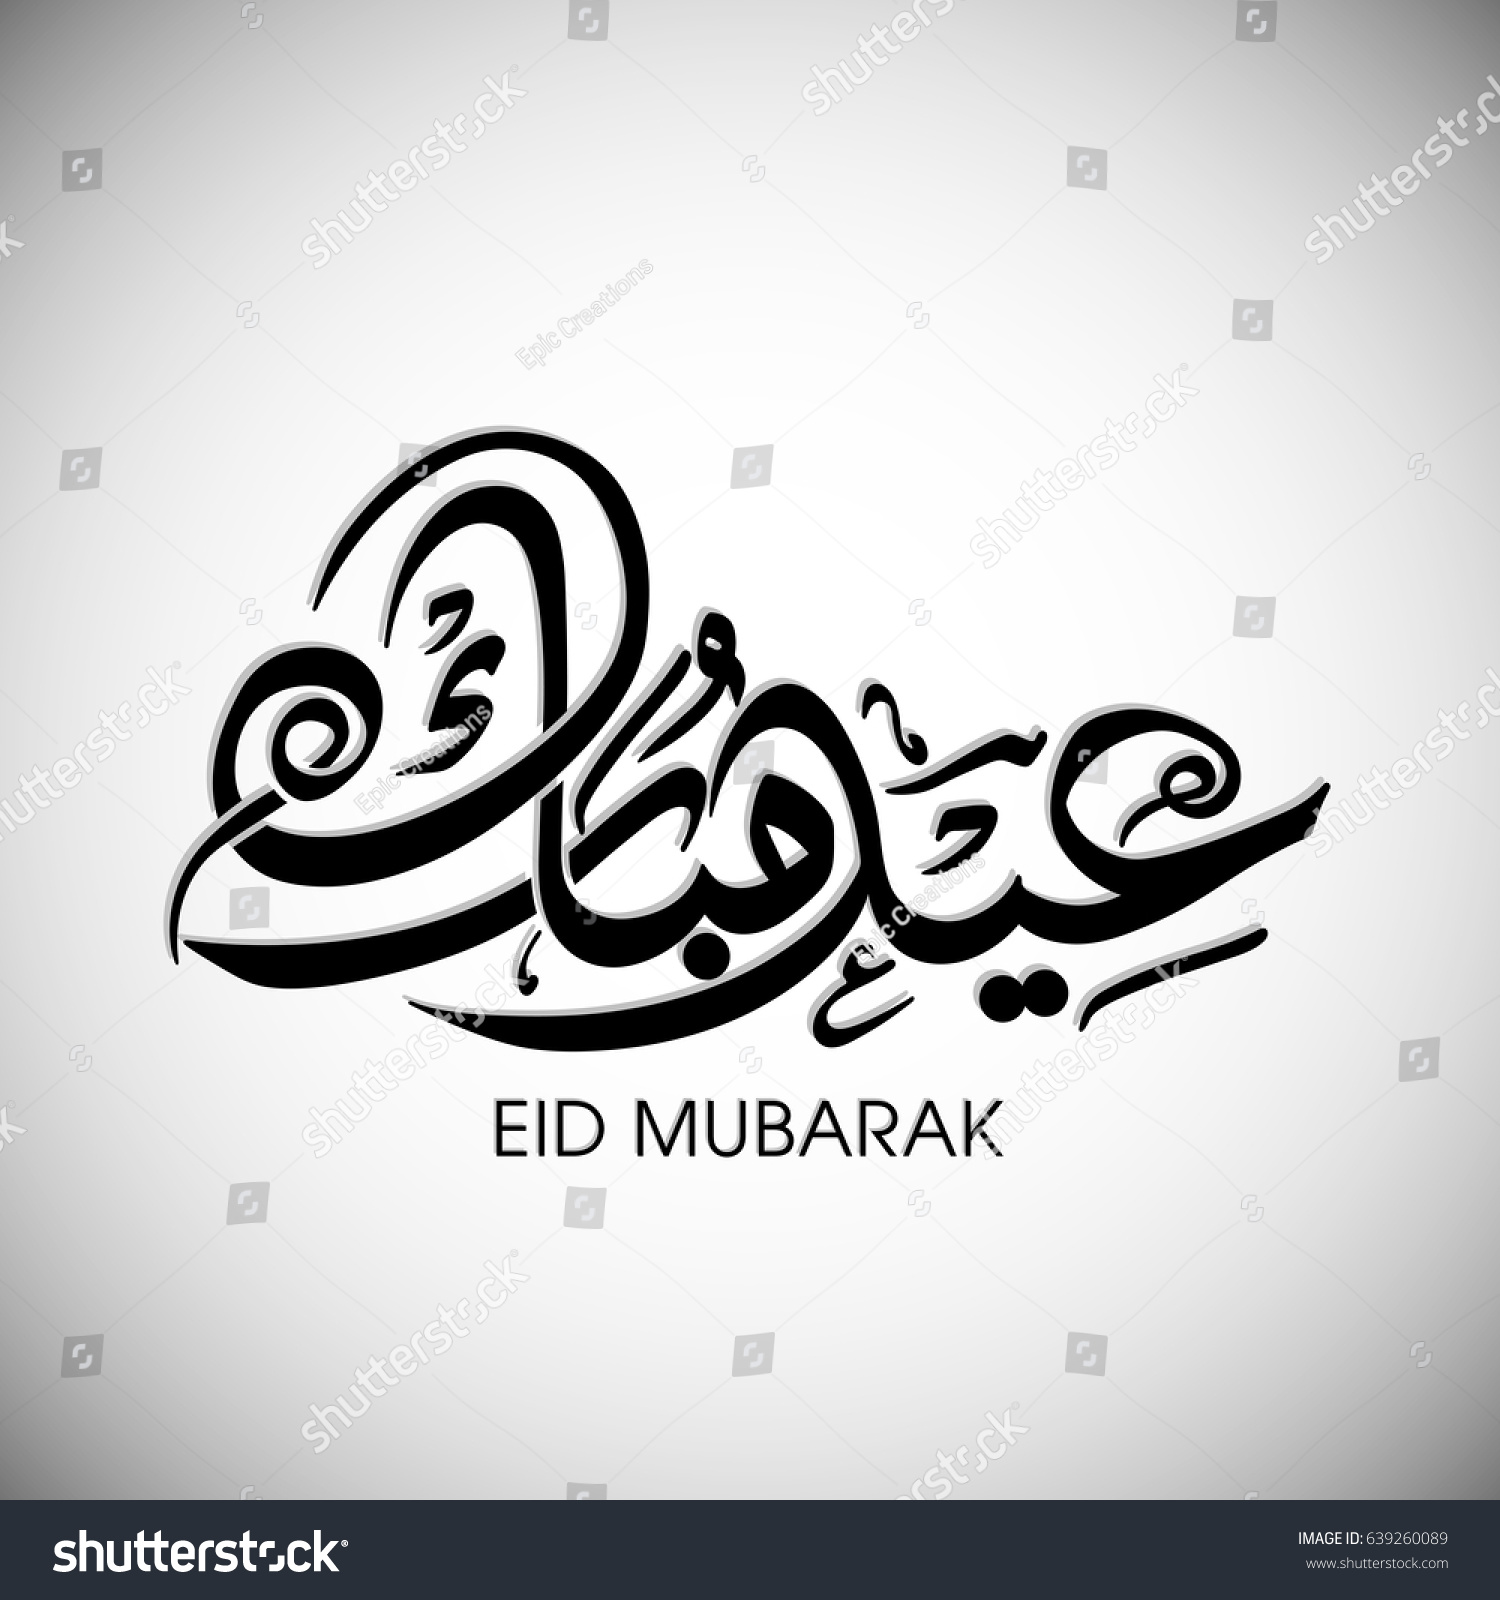 Illustration eid mubarak intricate arabic calligraphy